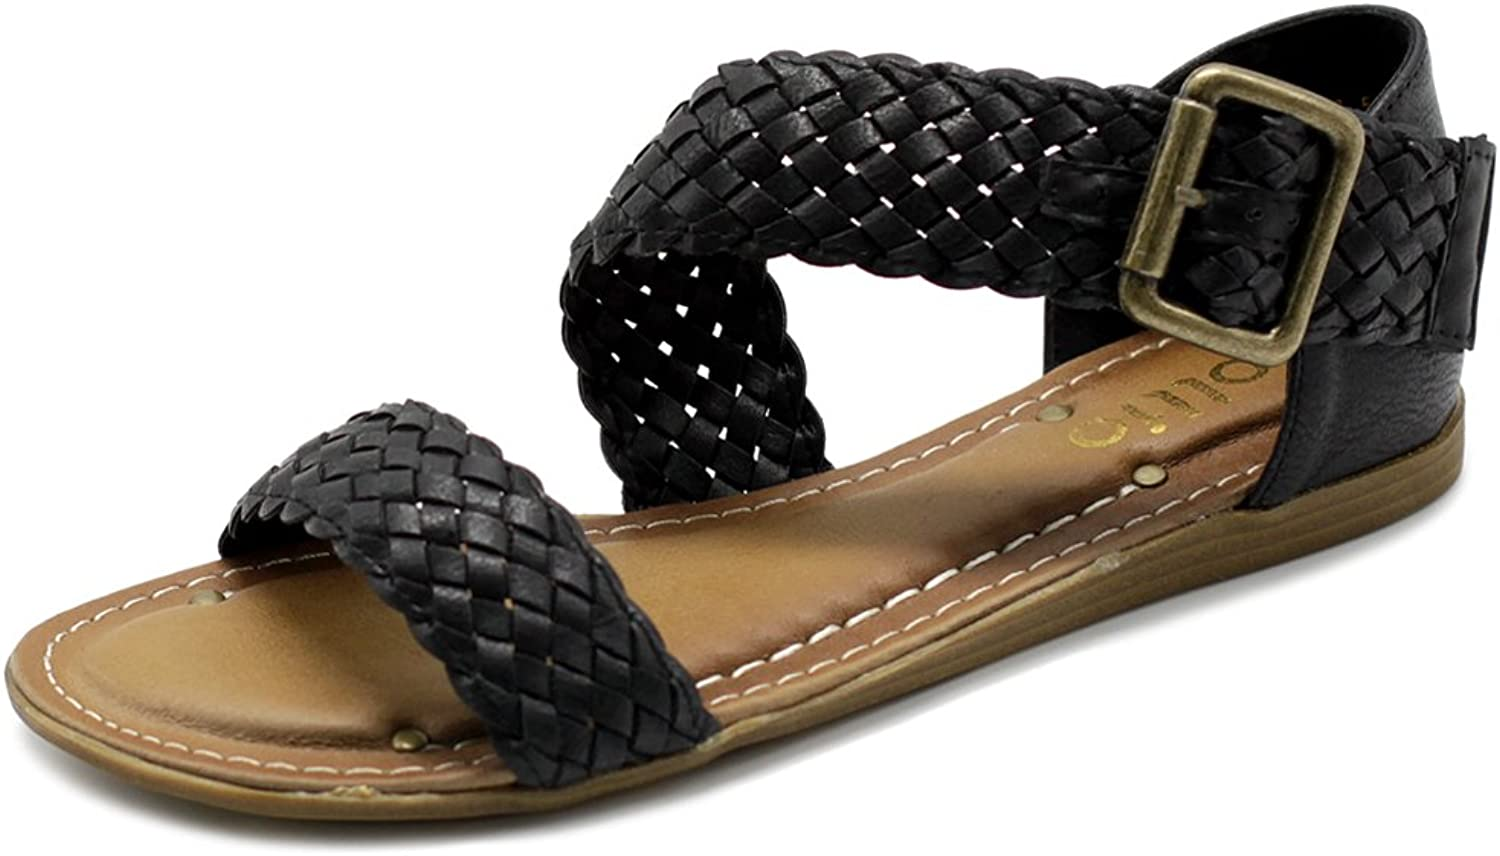 Ollio Women's shoes Braided Side Buckle Accent Multi color Flat Sandal